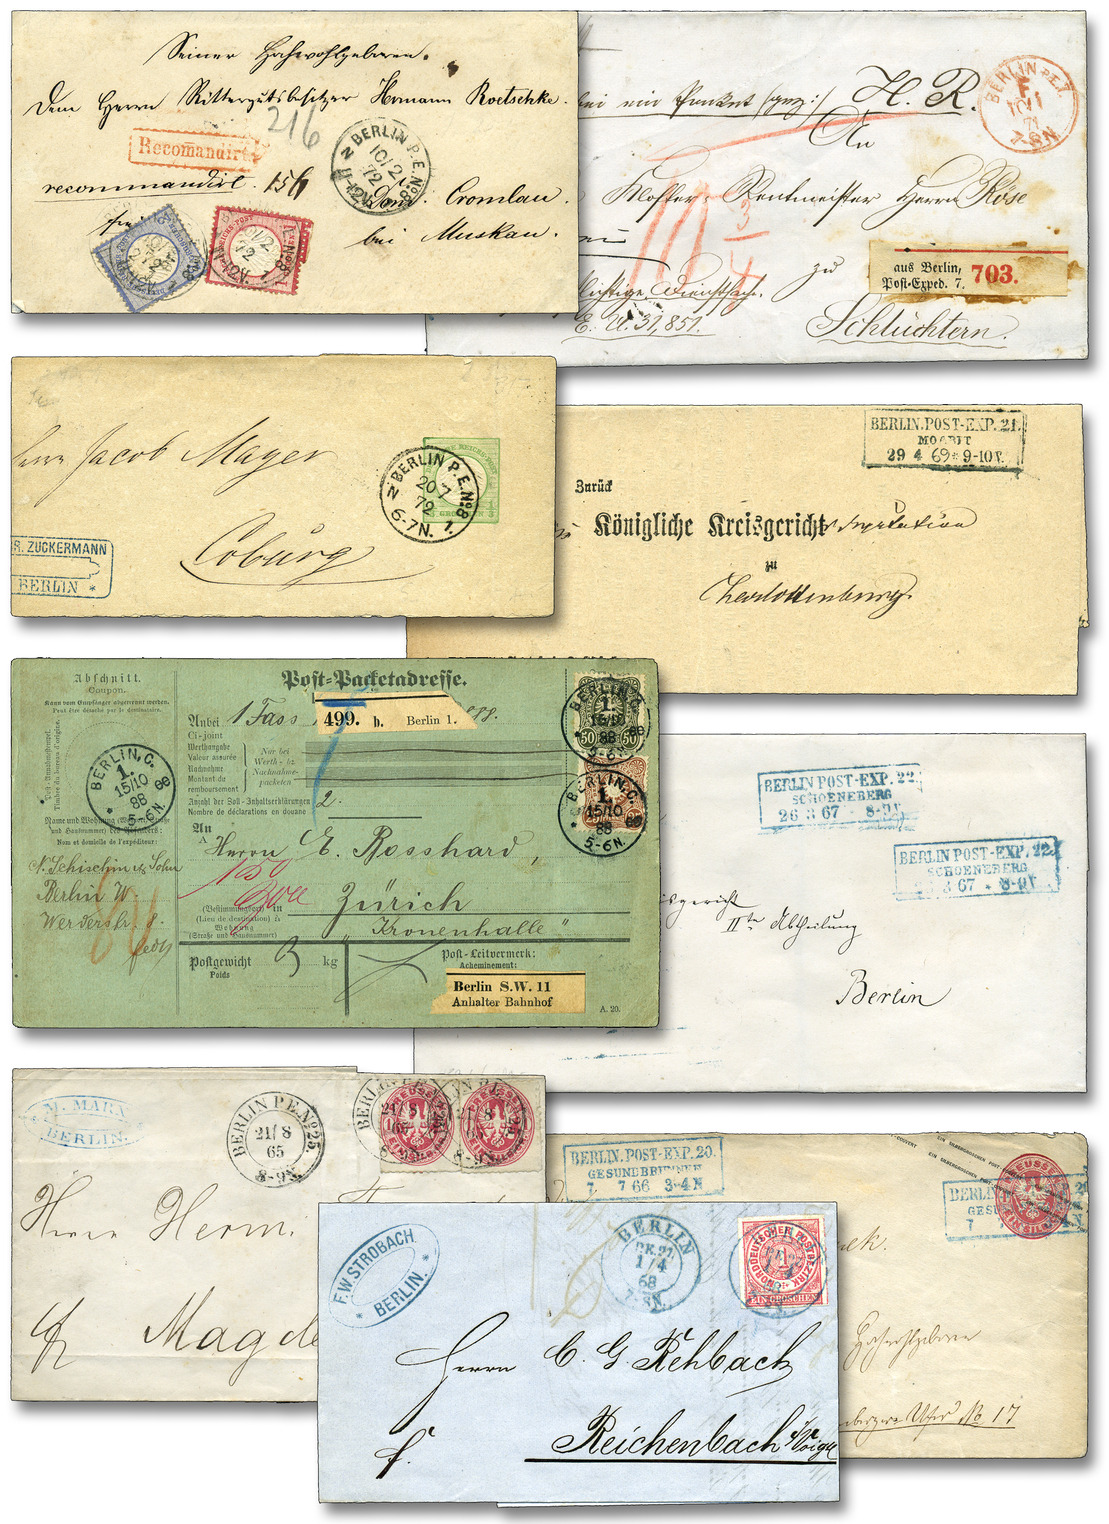 BERLINER POSTGESCHICHTE: 1860/1900 ca., Stempelsammlung in sieben dicken Bänden ab ungefähr 1860er Jahre bis um die Jahrhundertwende. Gesammelt nach Postamtsnummer ab Berlin PE 1 / C1 bis zur Nummer 100/106. Zusammen um die 1370 Belege, dazu viele Marken und Briefstücke zu den einzelnen Nummern. Als Grundlage diente der KBHW-Katalog, die Postamtsnummern ab PA 65, 66 und folgend immer mit meist nur einem Stück vertreten. Die KBHW-Nummern sind jeweils verzeichnet, laut Aufstellung ergibt sich ein Katalogwert nach KBHW von rund 57000.- DM, dabei sind Frankaturen, Versandarten, Portostufen oder Ganzsachen vollkommen unbeachtet. Natürlich sind auch unterschiedliche Erhaltungen vertreten. Dabei auch Einschreiben Berlin 74, 80, 84, 86, 88, 89, 90, 91, 93, 96, 100, 101, 103, 105, 107, Rohrpost Reichstag und Abgeordnetenhaus. Selten in dieser Vielfalt zu finden, in Jahrzehnten zusammengetragen. Idealer Grundstock für eine umfassende Stempelsammlung der Hauptstadt, ein kleiner Auszug bei den Fototafeln. Eine summarische Aufstellung über Anzahl, KBHW-Nummer und Wert nach KBHW kann angefordert werden. Automatically generated translation: Berliner postal history: 1860 / 1900 approximate, collection of cancellations in seven thick volumes from approximate 1860er years till around the turn of the century. Collected to Post office number from Berlin PE 1 / C1 till to the number 100 / 106. together about the 1370 documents, in addition to it many stamps and pieces to the several numbers. As basis served the KBHW catalogue, the post office numbers from PA 65, 66 and ensuing always with mostly only a piece be present. The KBHW numbers are in each case indicates, according to listing results be a catalogue value to KBHW from round 57000.- DM, as well are frankings, shipping methods, postage steps or postal stationeries perfect unappreciated. Naturally are also mixed conditions be present. With also registered Berlin 74,80, 84, 86, 88, 89,90, 91, 93, 96,100, 101,103,105,107, pneumatic post Reichstag and house of representatives. Rare in this variety to find, in decades compiled. Perfect base for a comprehensive collection of cancellations the capital, a small statement by the photo boards. A summarische listing over amount, KBHW number and value to KBHW can requested become. Dealer Berliner Auktionshaus Schlegel Auction Minimum Bid: 6200.00 EUR (via Philasearch.com: 11th Schlegel Auction - item 9097-A11-211)